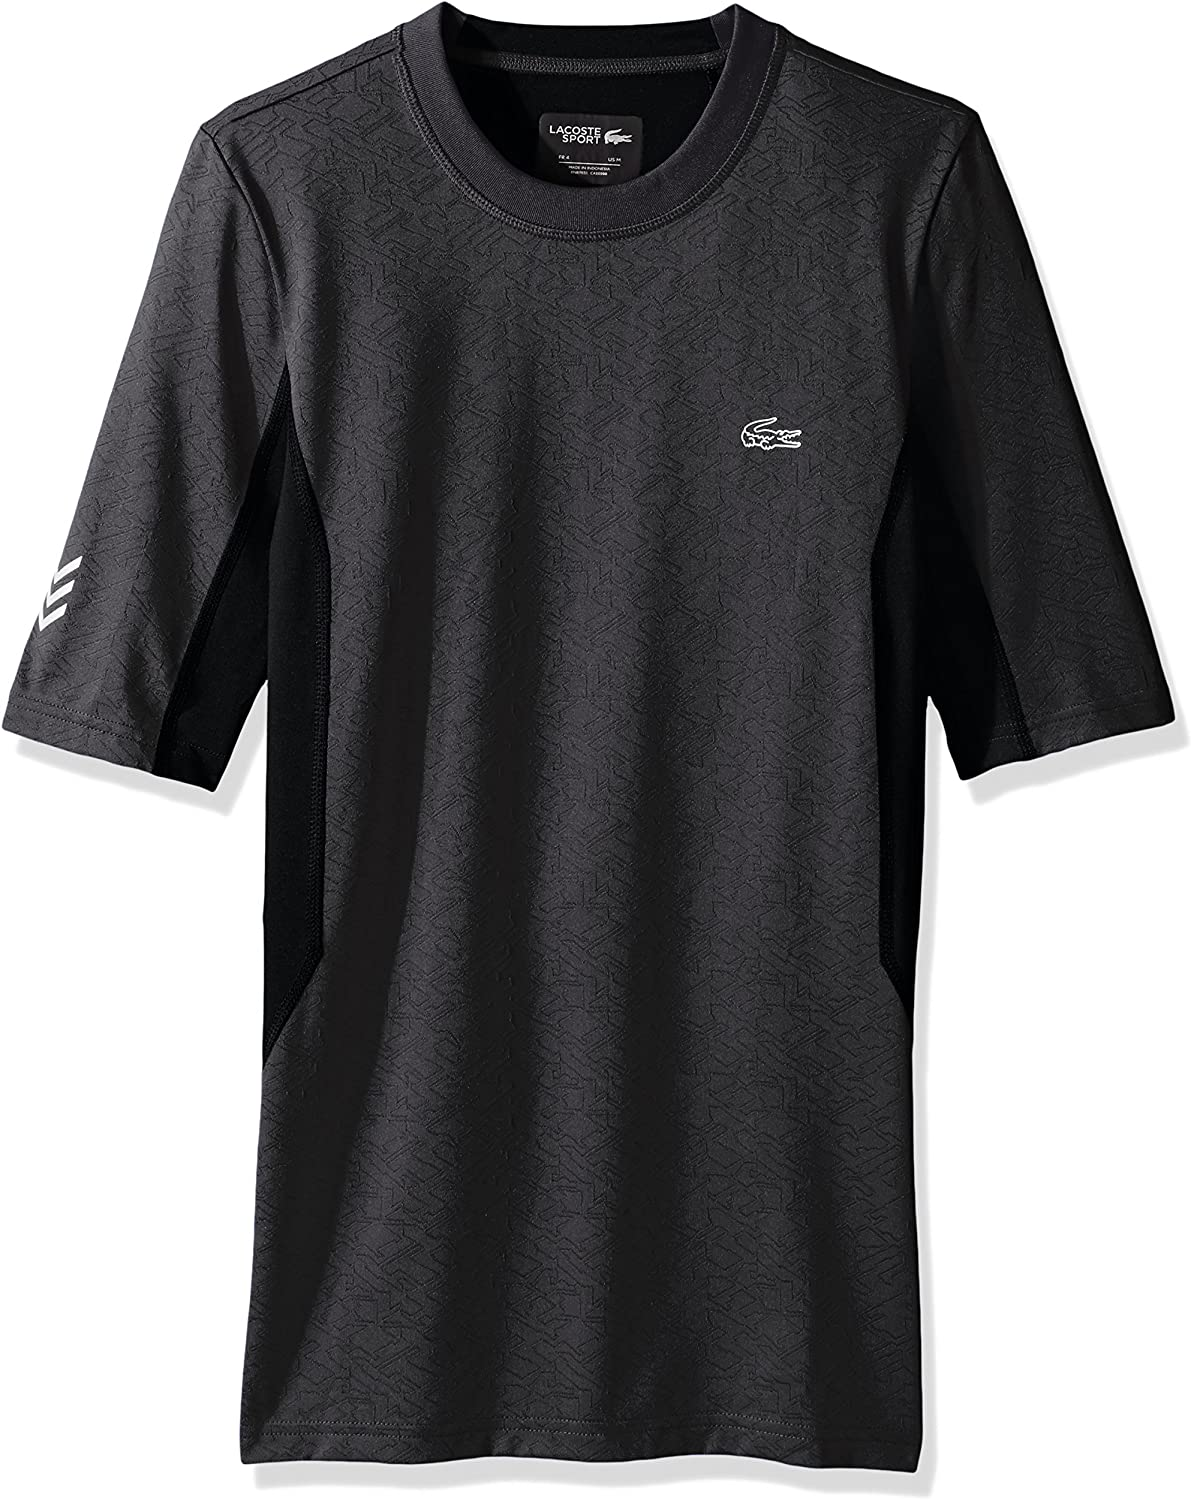 Lacoste Mens Performance Compression Short Sleeve Tee Shirt TH2079-51